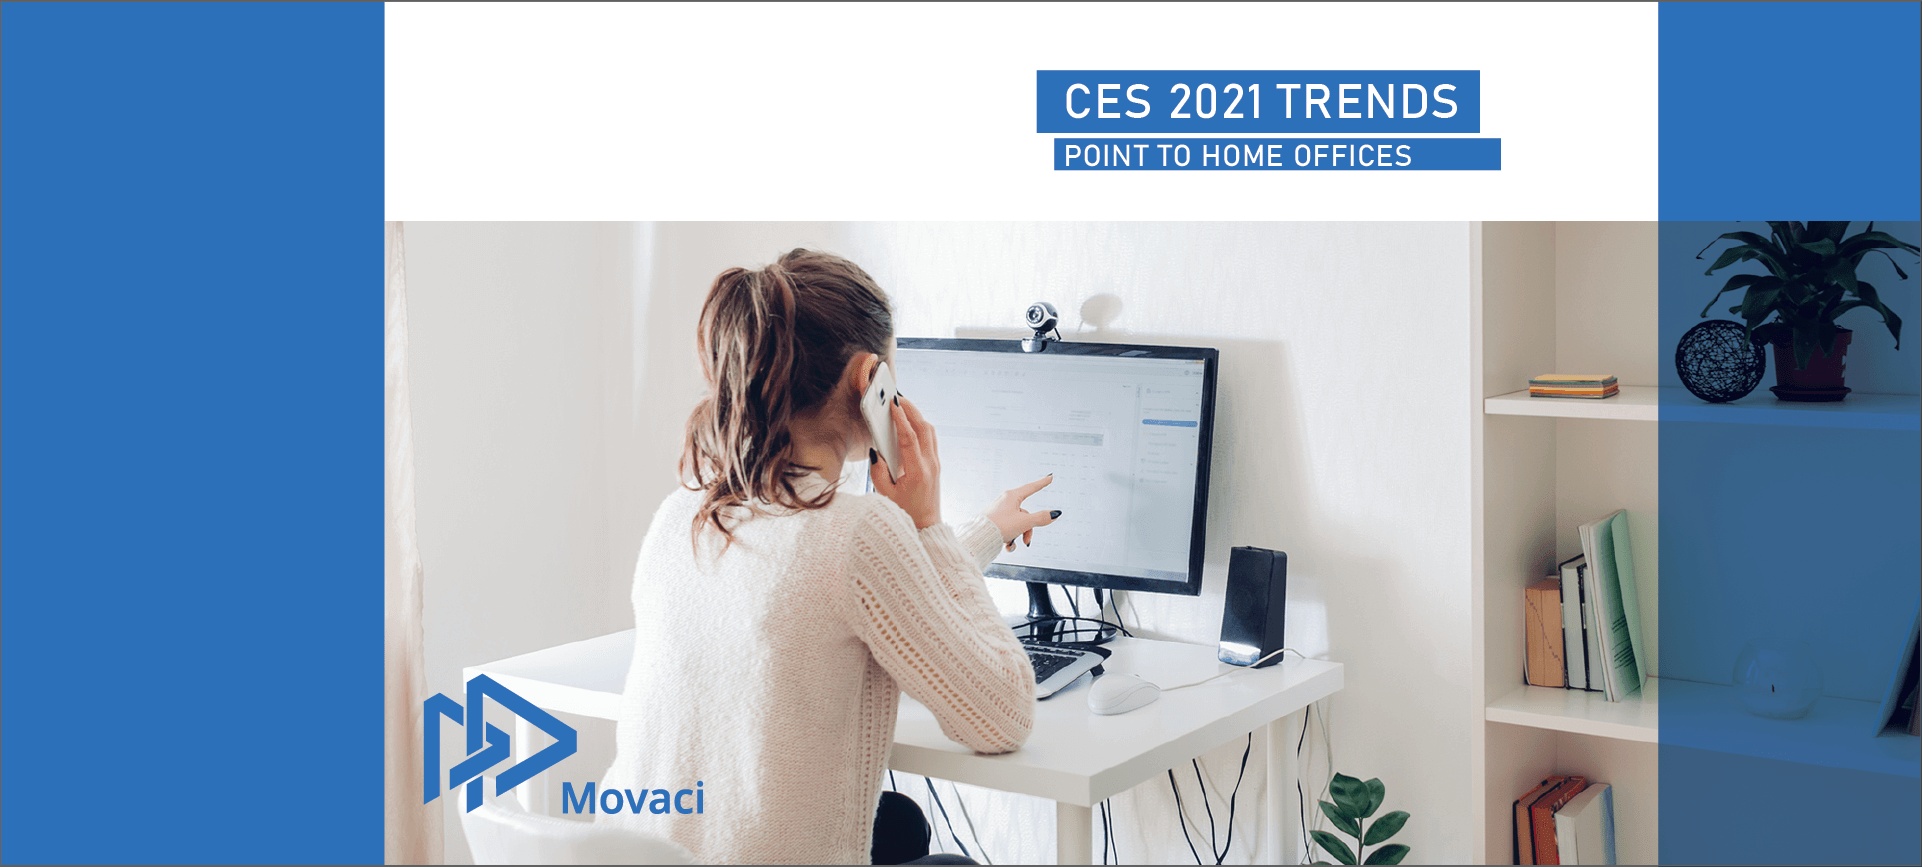 CES 2021 TRENDS POINT TO HOME OFFICES 1